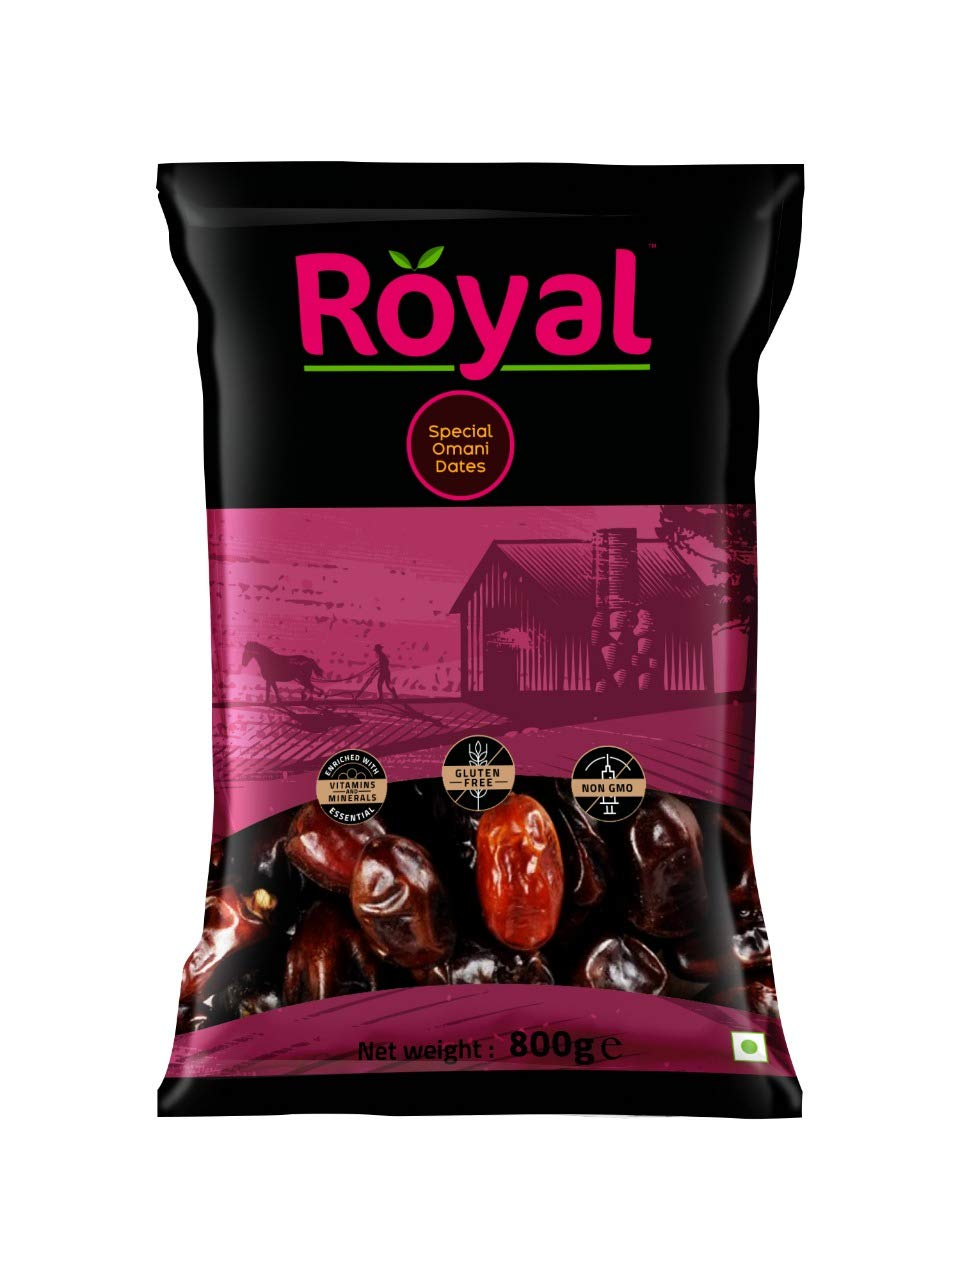 Royal Special Omani Dates 800gm